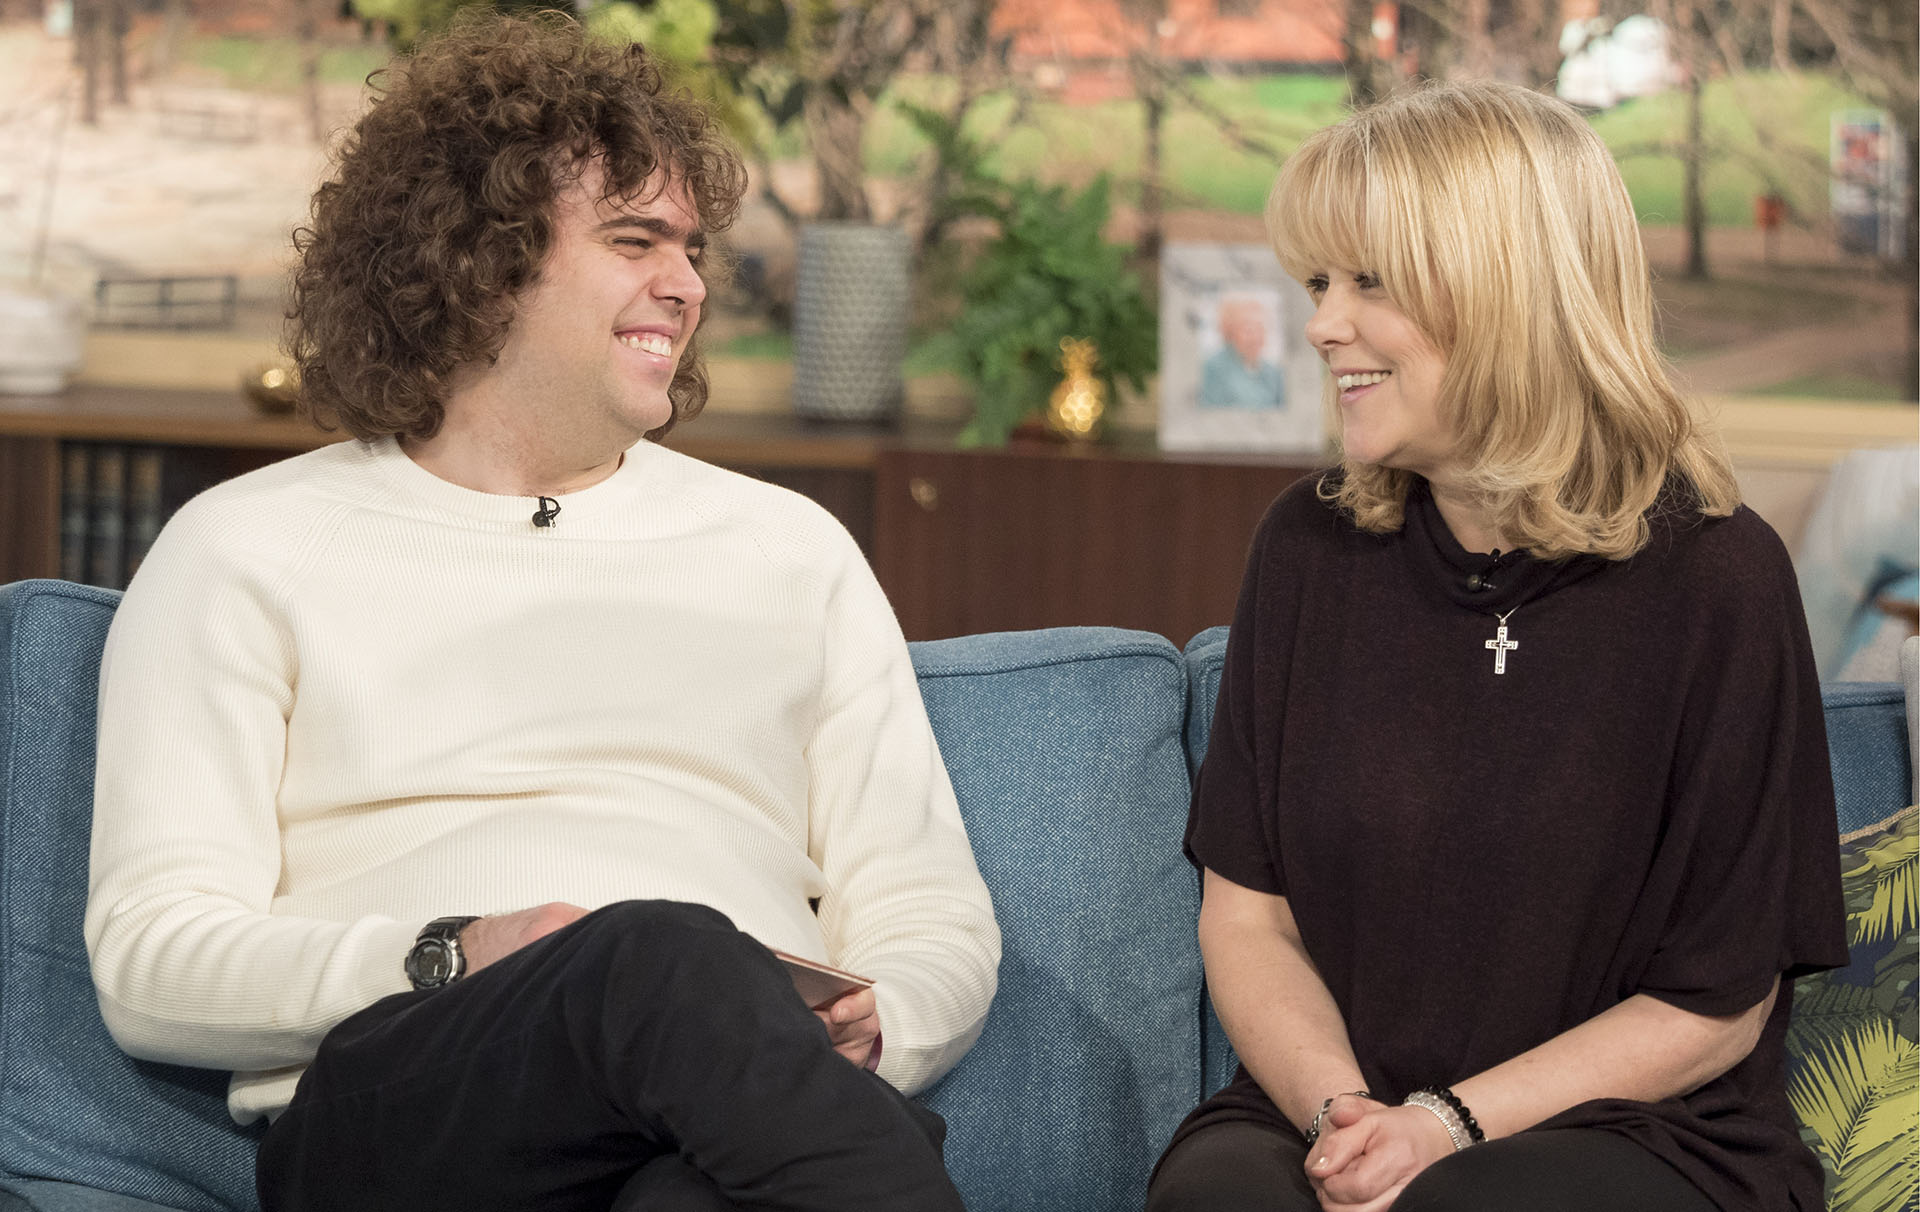 Undateables Daniel Wakeford and Lily Taylor engaged